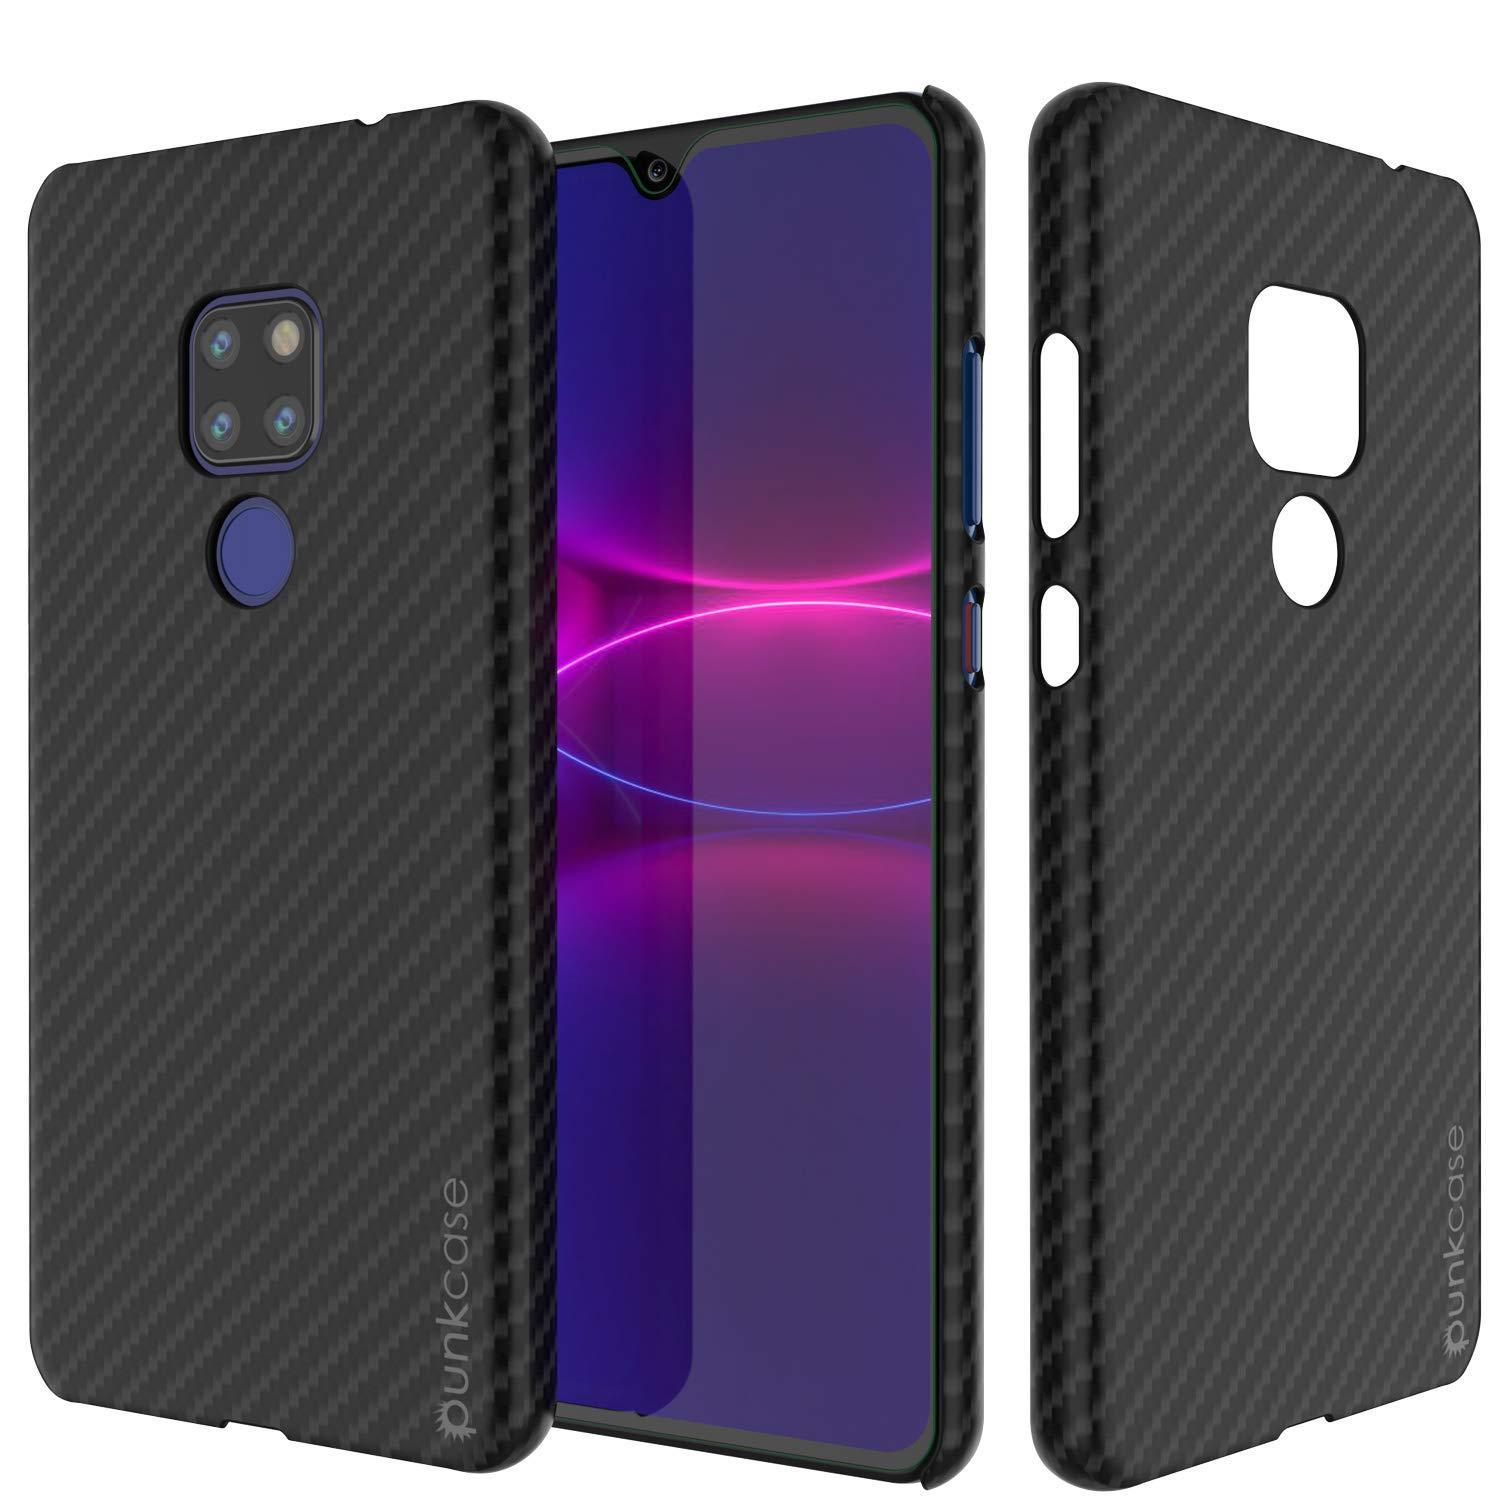 Huawei Mate 30 Pro Case, Punkcase CarbonShield, Heavy Duty [Black] Cover